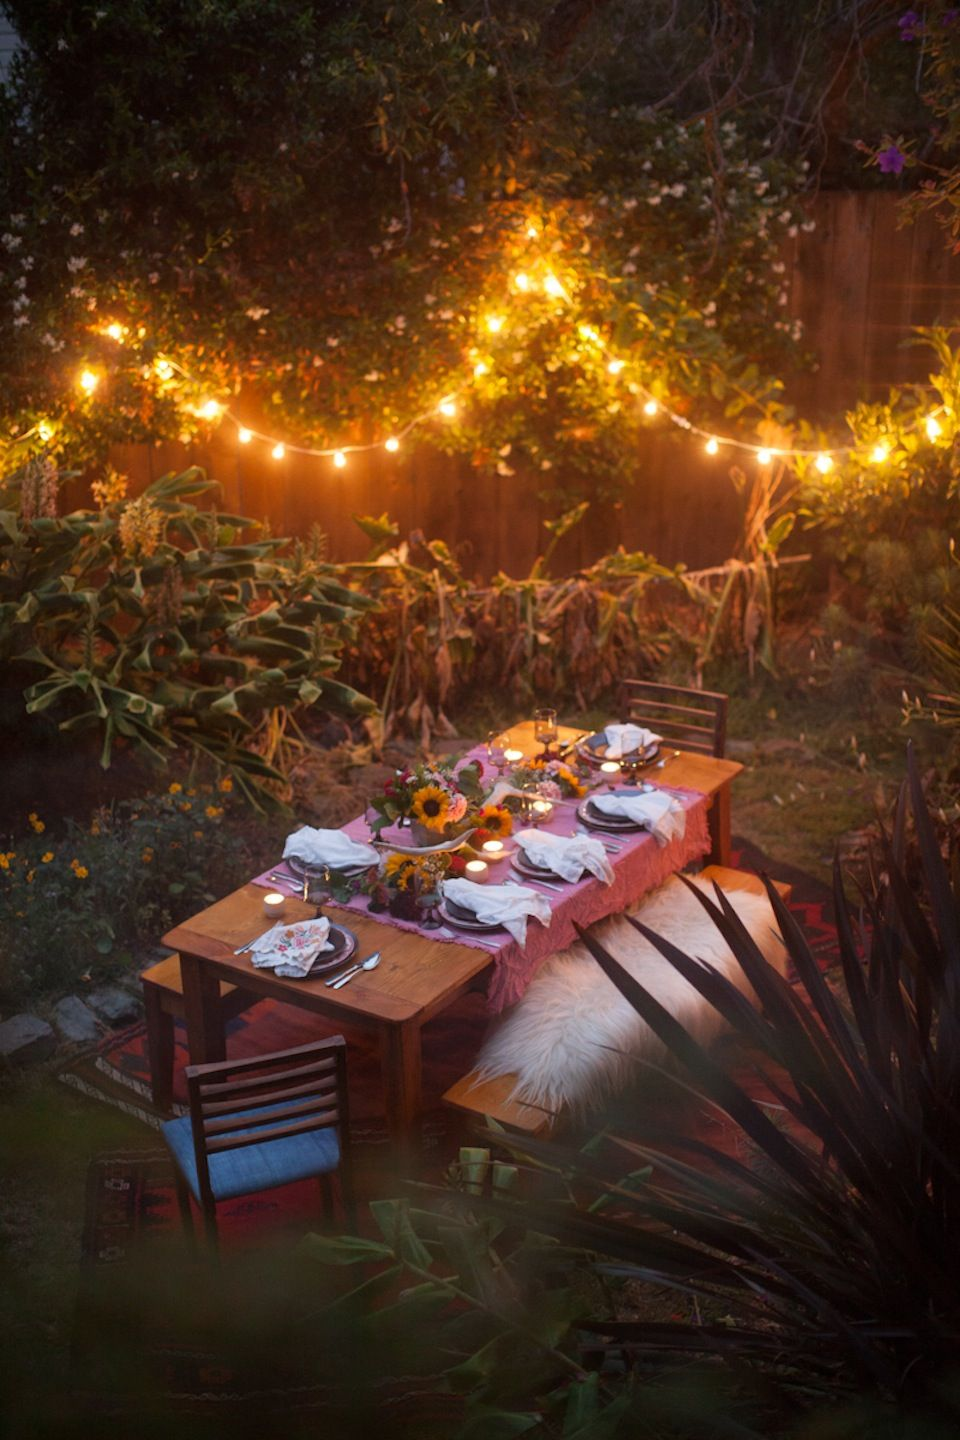 outdoor night lights on san francisco night picnic night picnic outdoor dinner backyard bbq party outdoor dinner